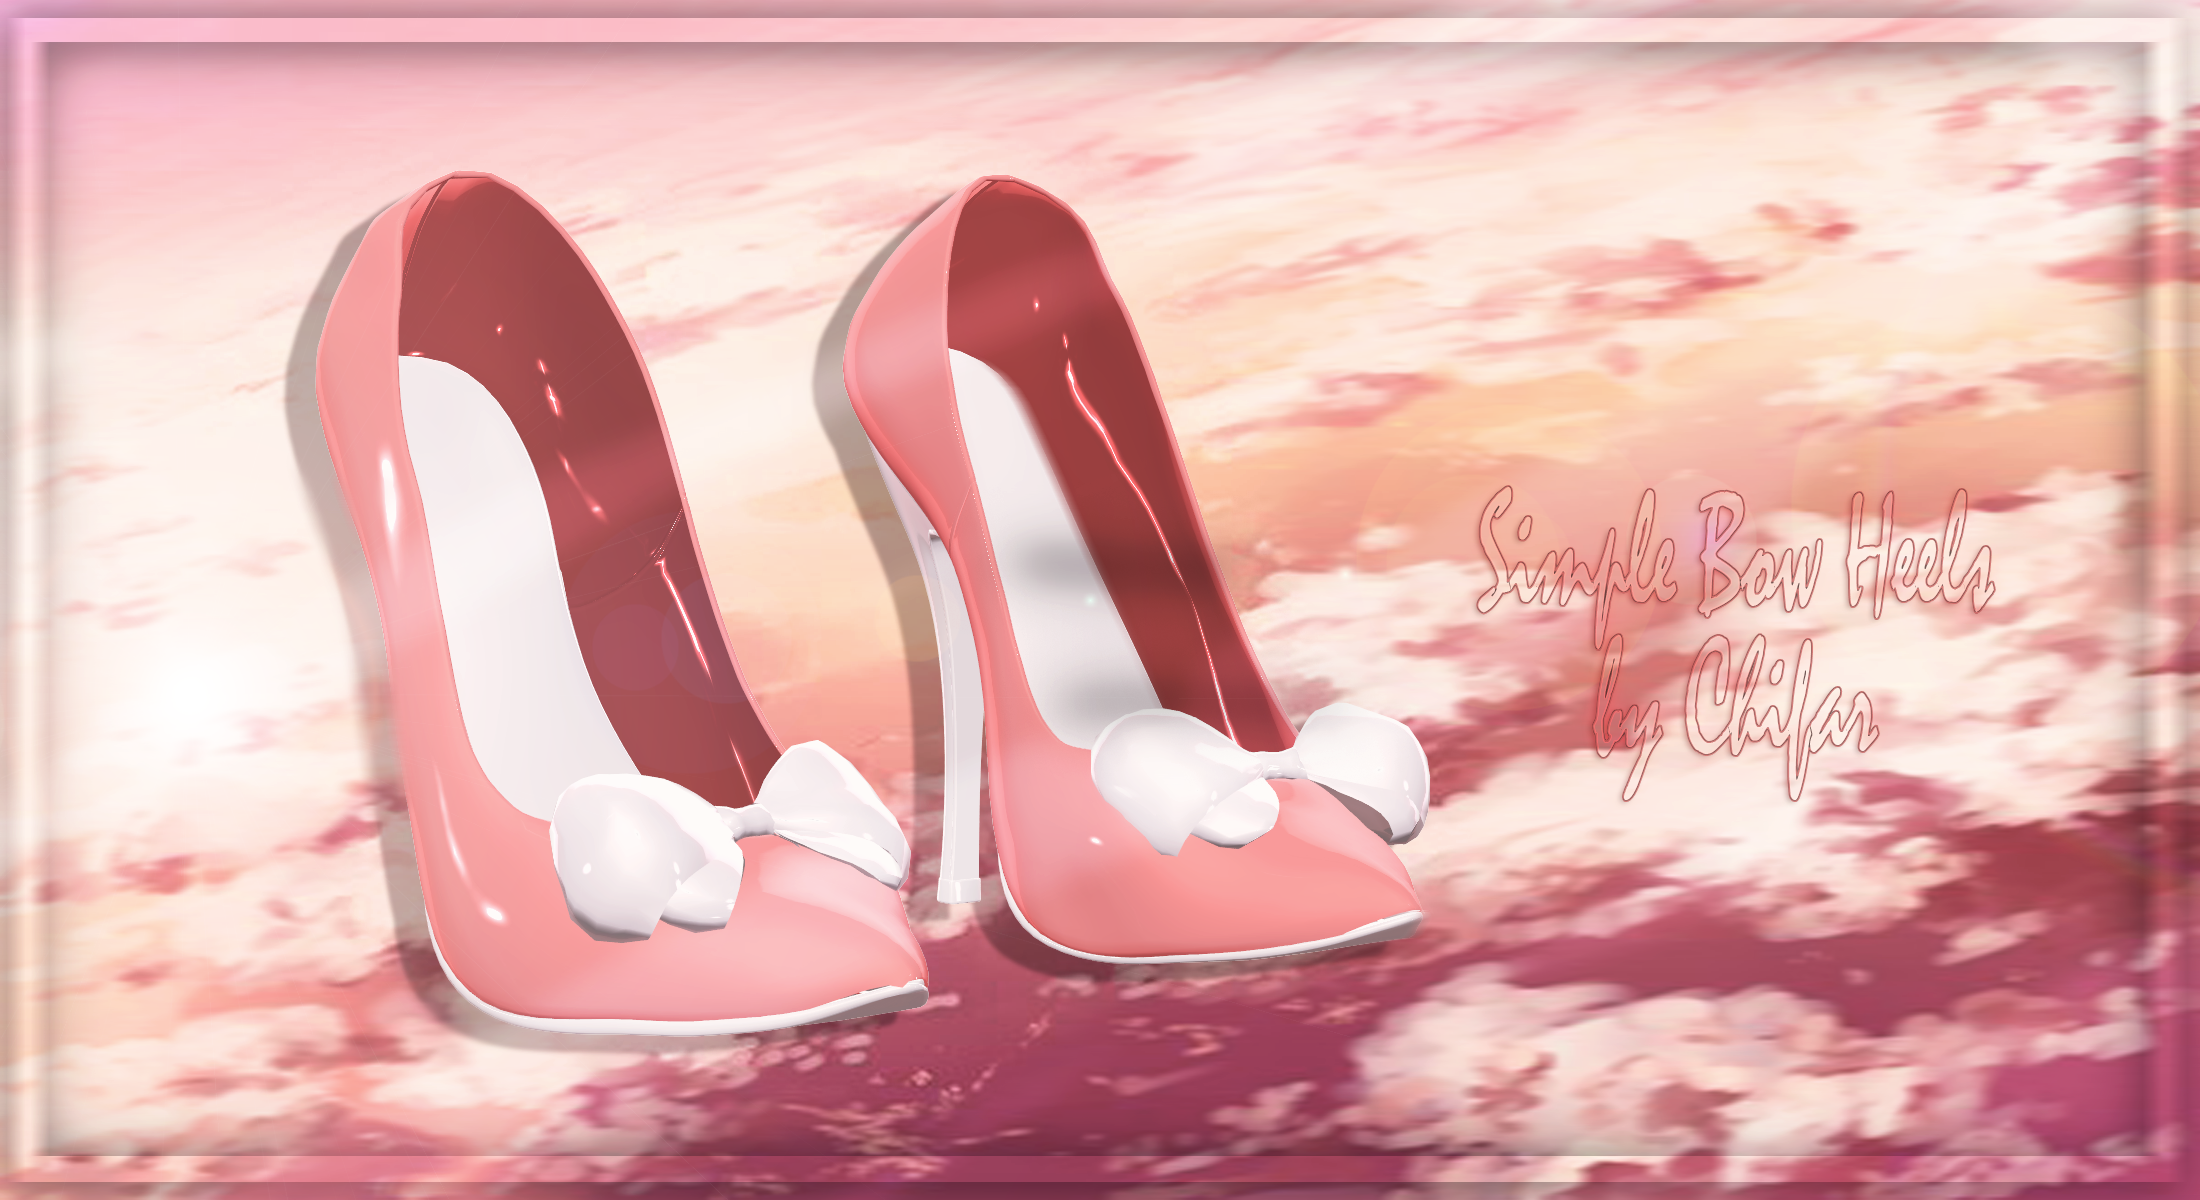 [MMD] Simple Bow Heels [DL CLOSED]